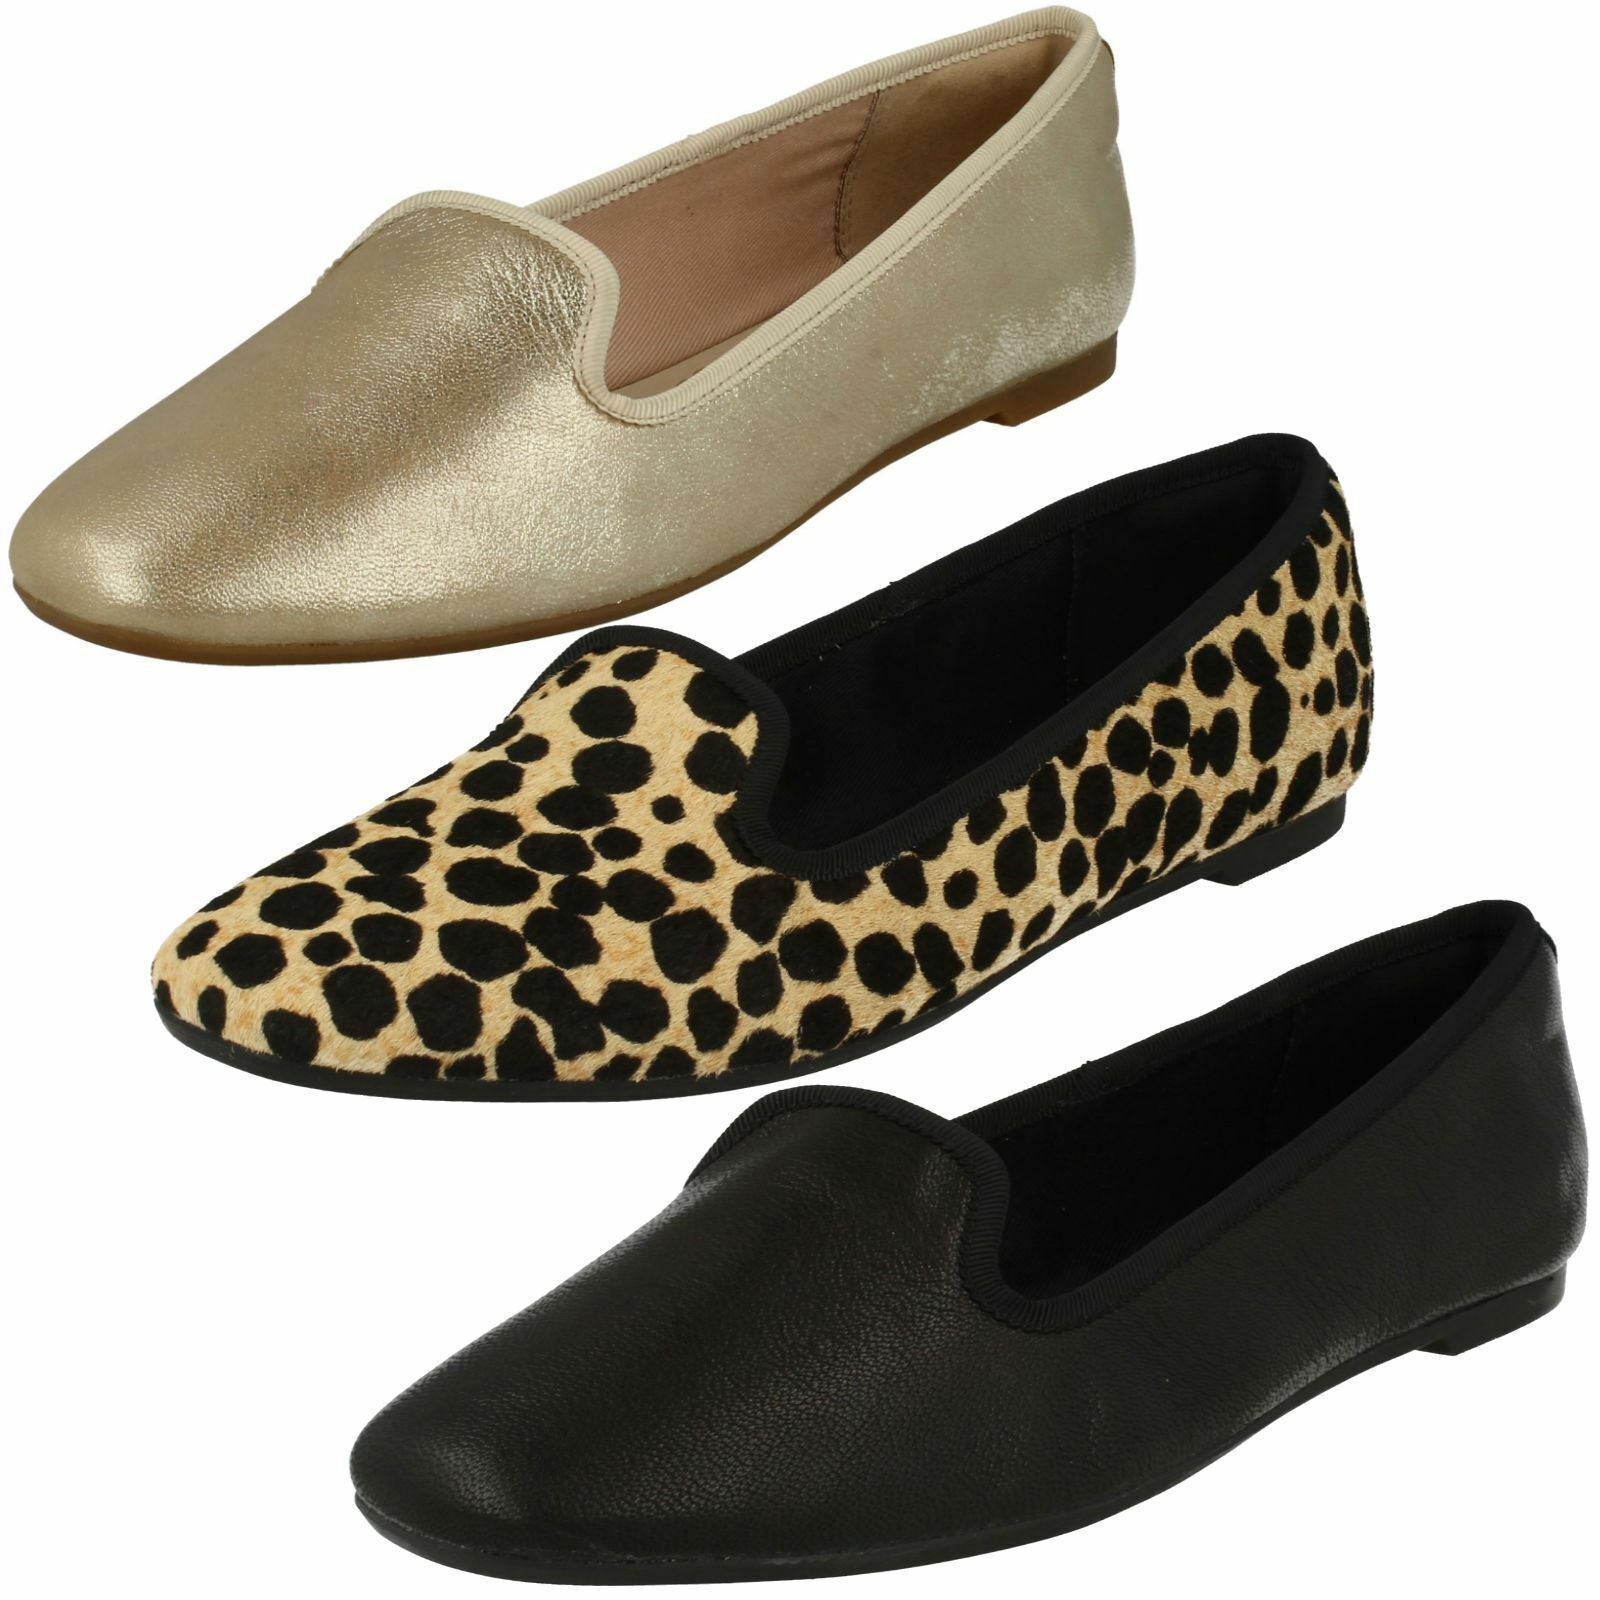 Clarks Chia Milly Black, Champagne Or Leaopard Leather Casual Slip On Pumps